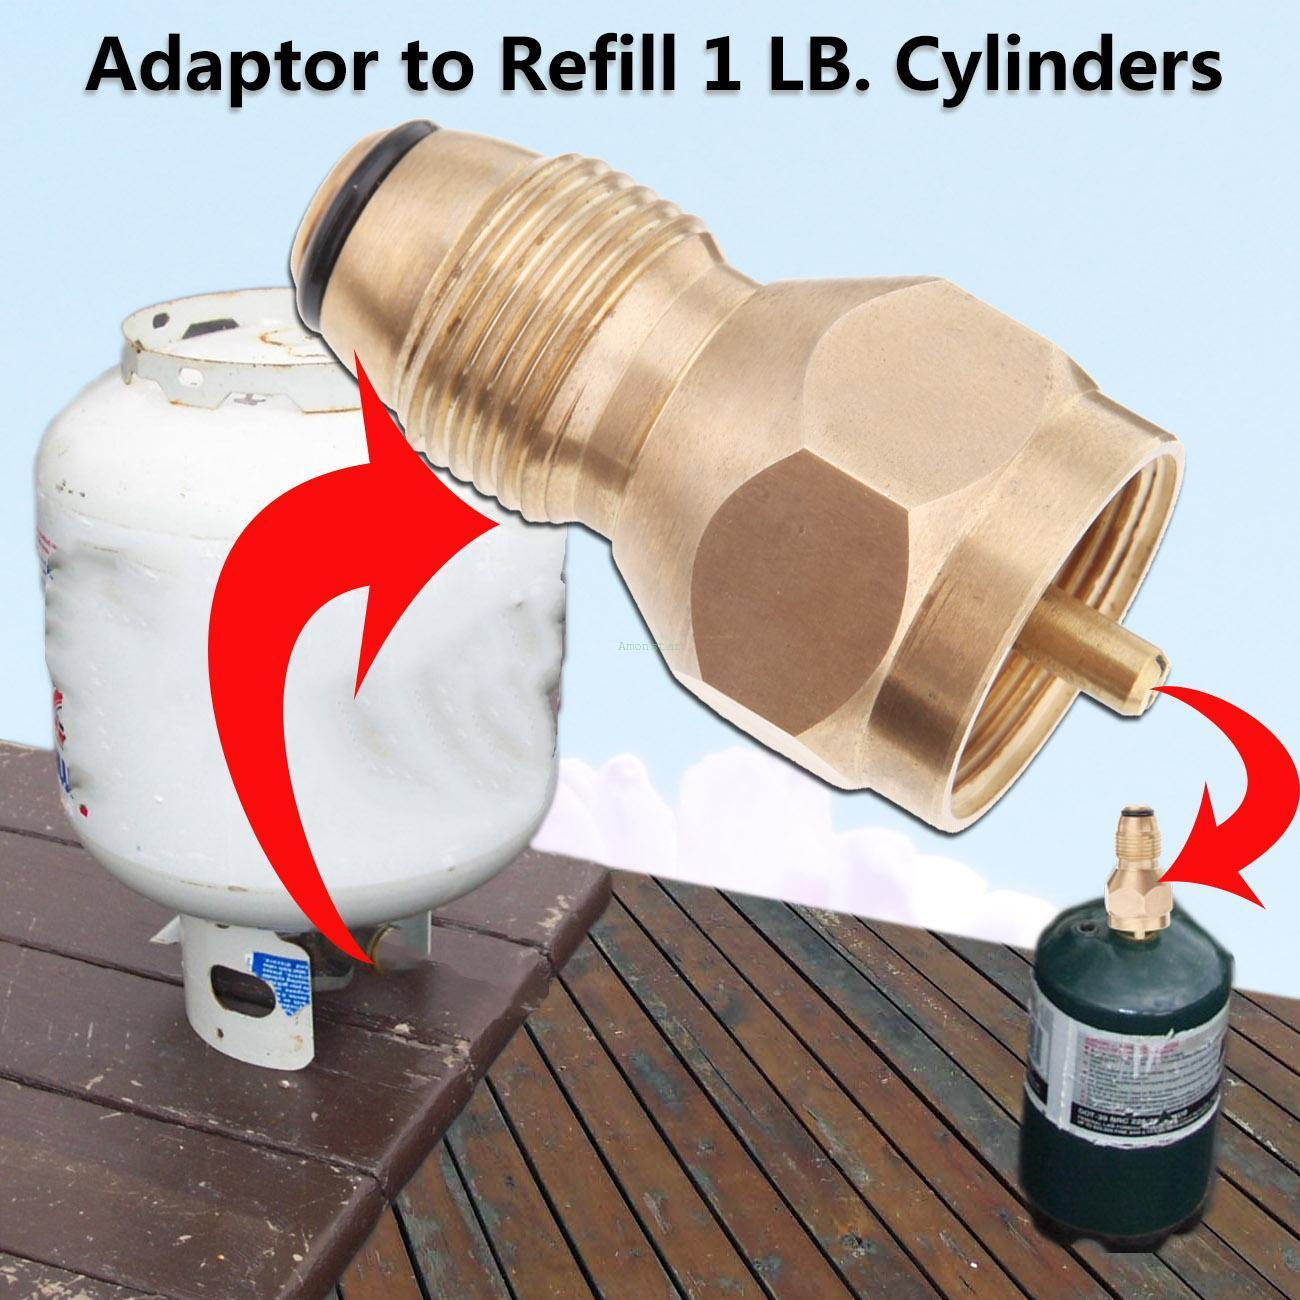 Heater Stove Small Tank Cylinder Refill 1 LB Adapter For LP Propane Gas Bottles